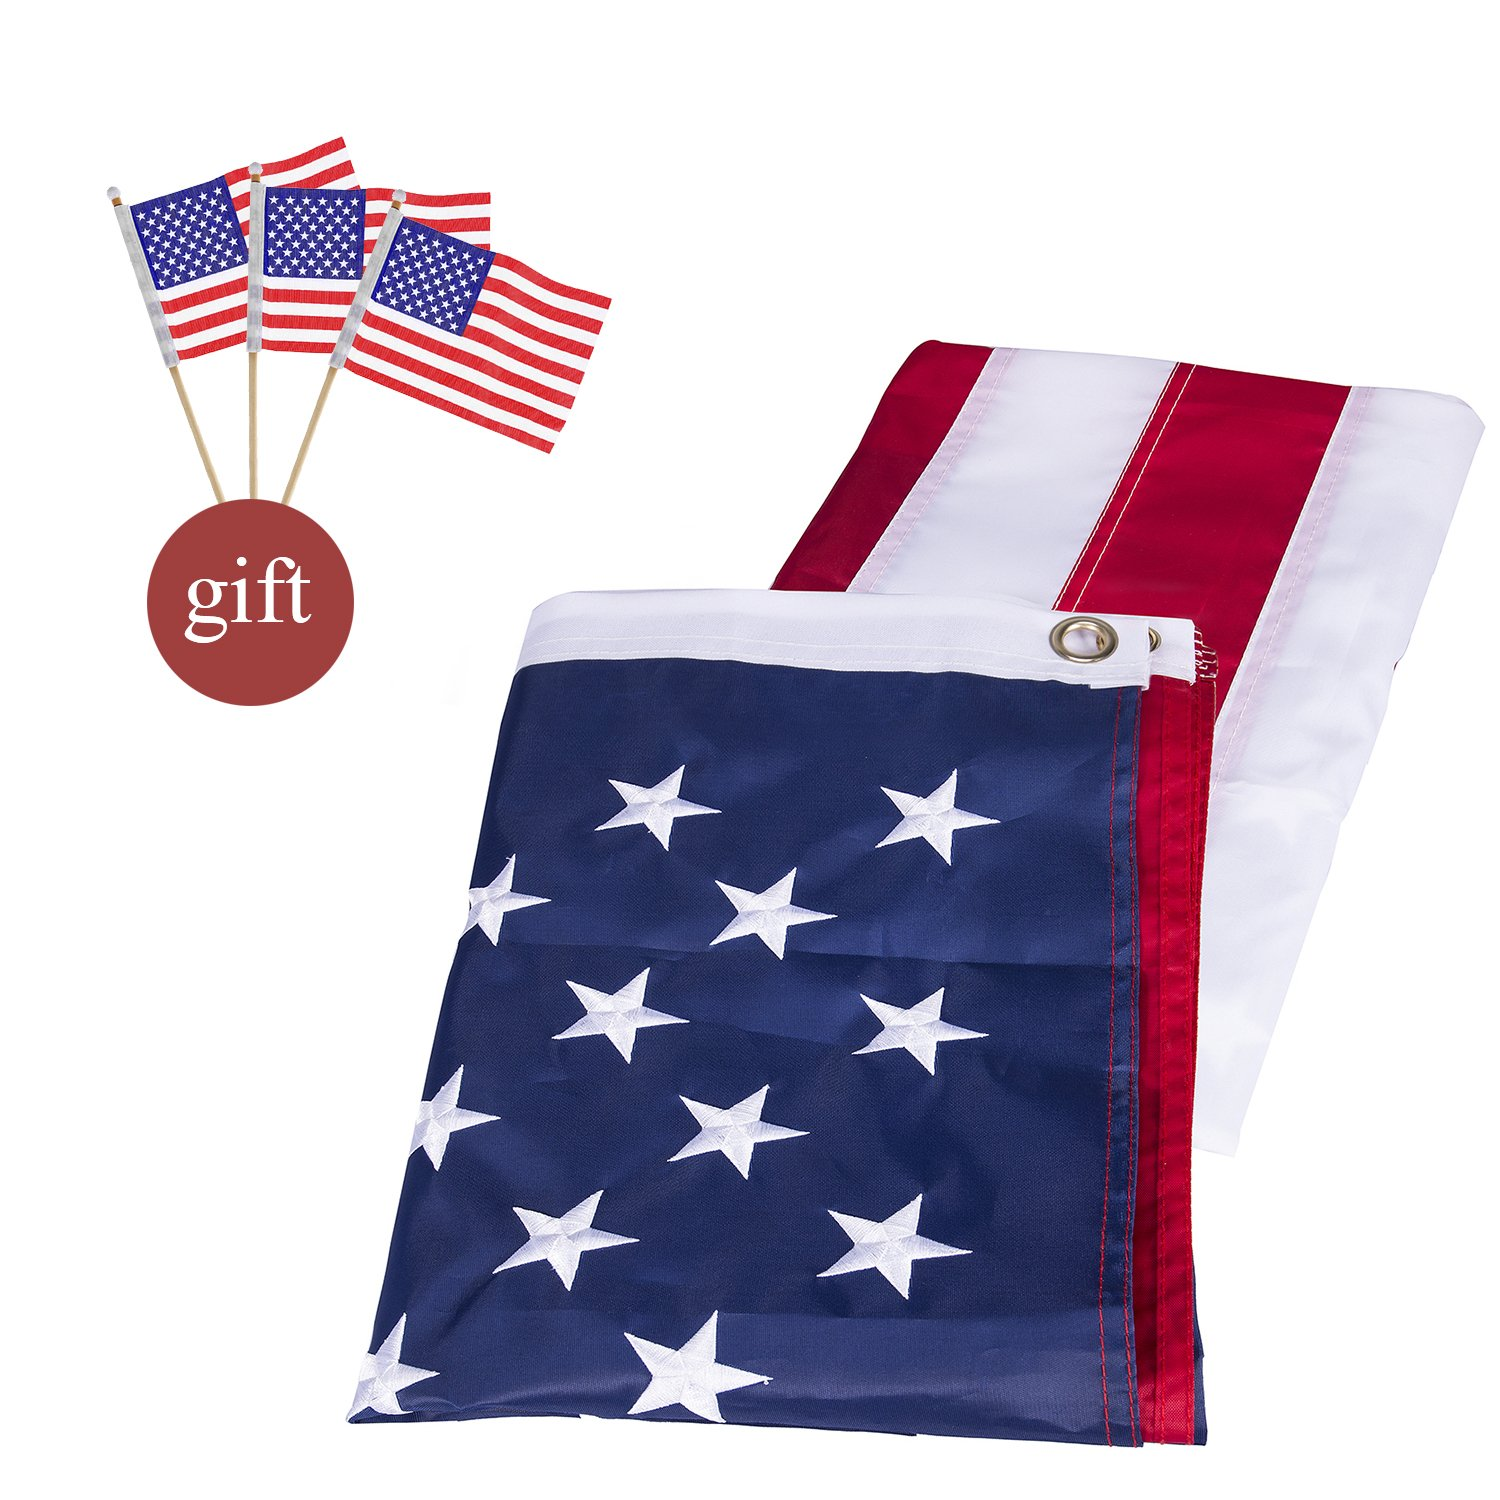 07c933c123df Get Quotations · Newever American Flags